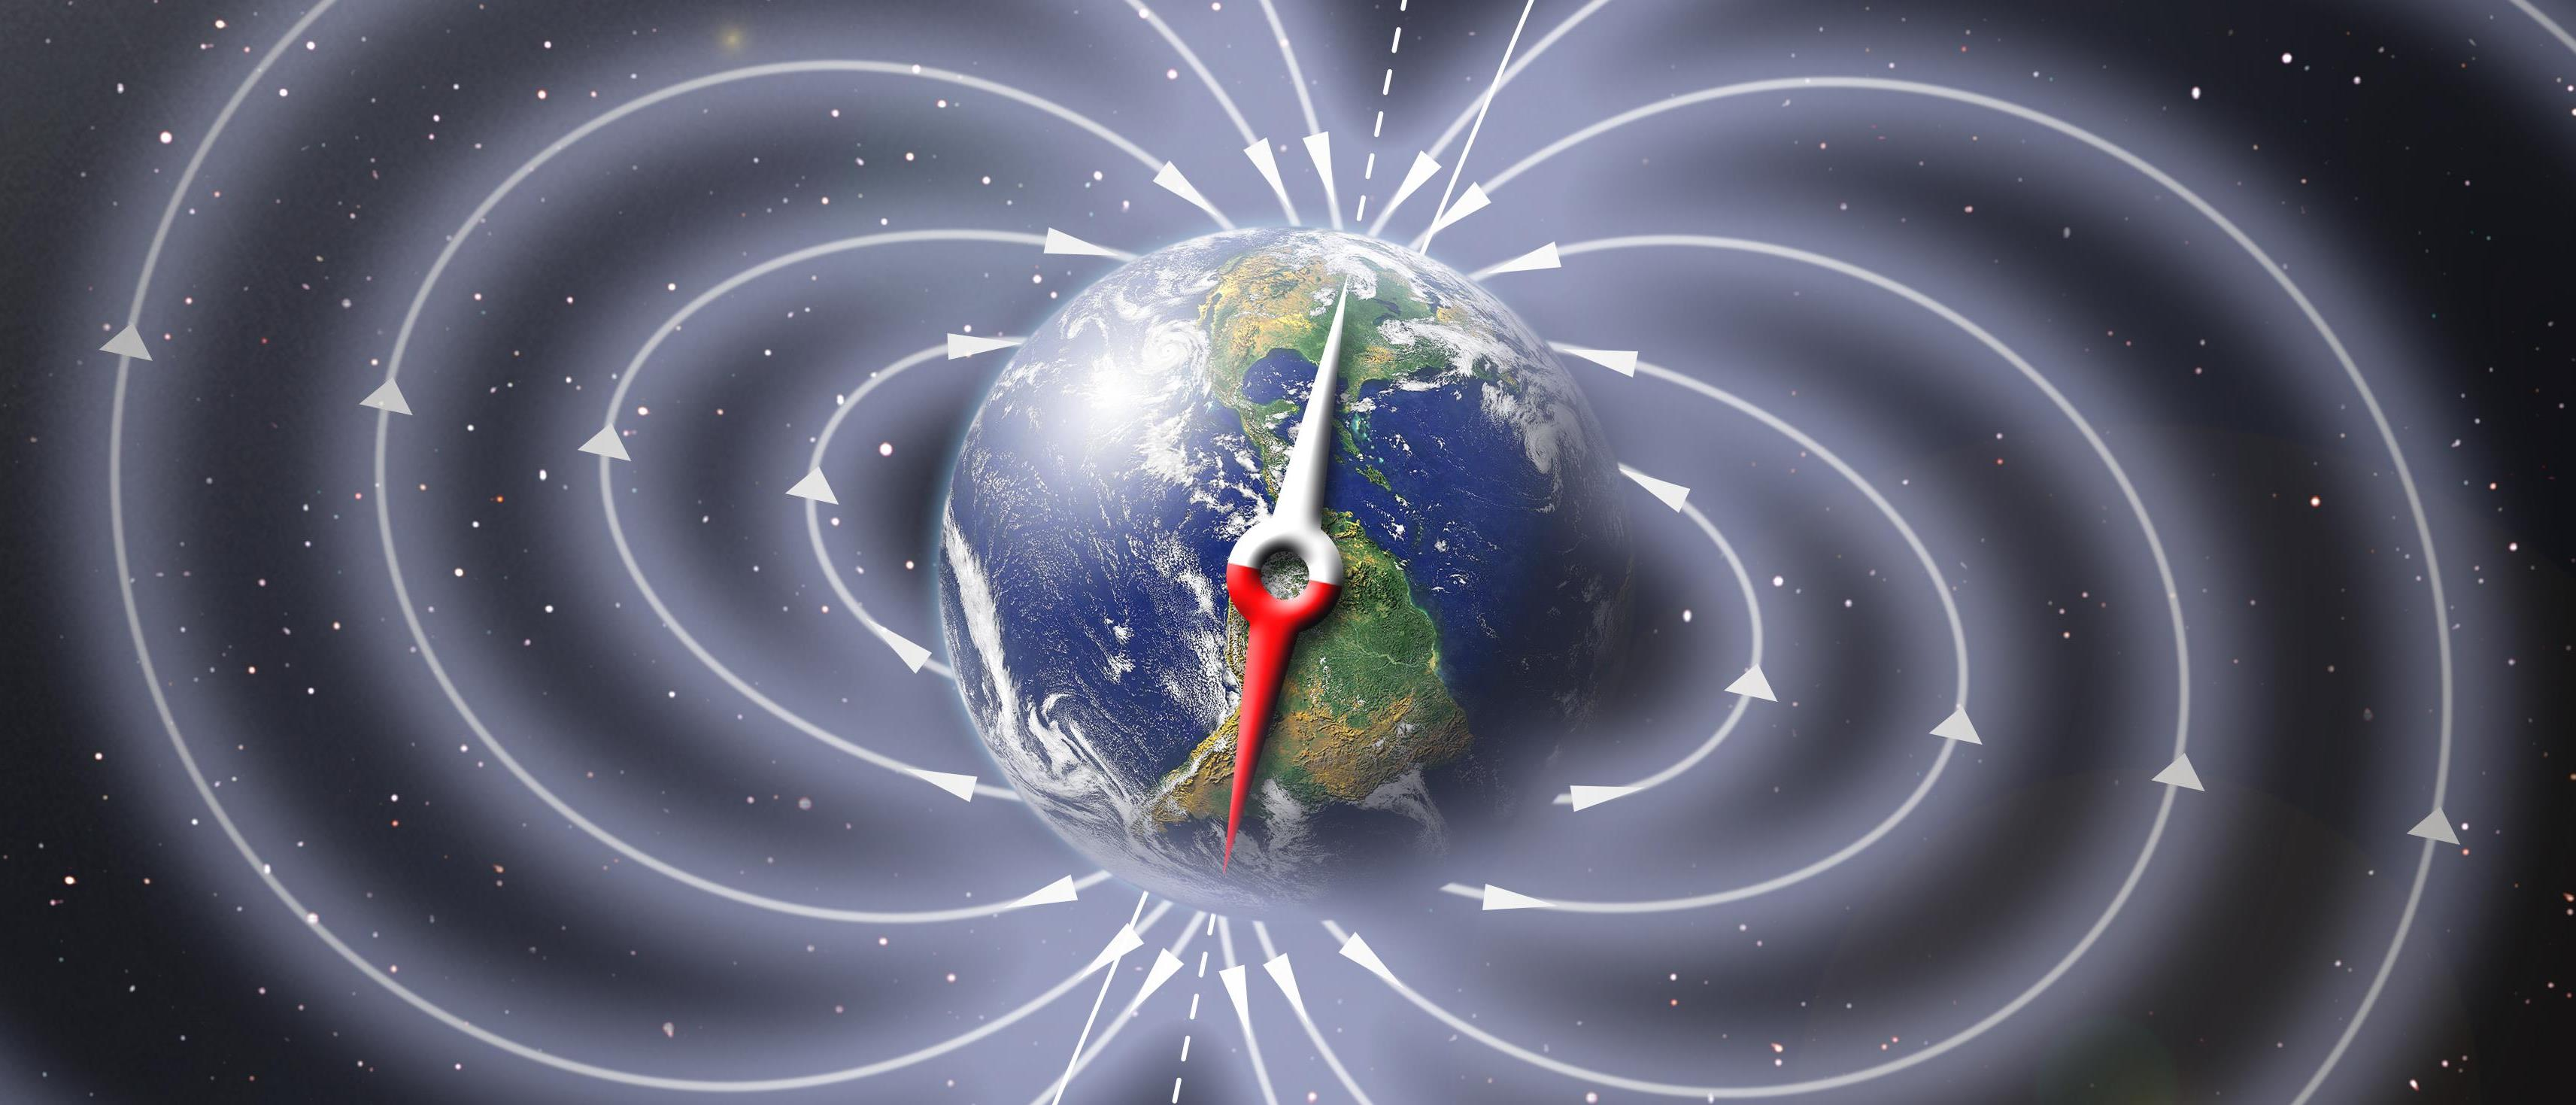 Nmr Using Earth S Magnetic Field